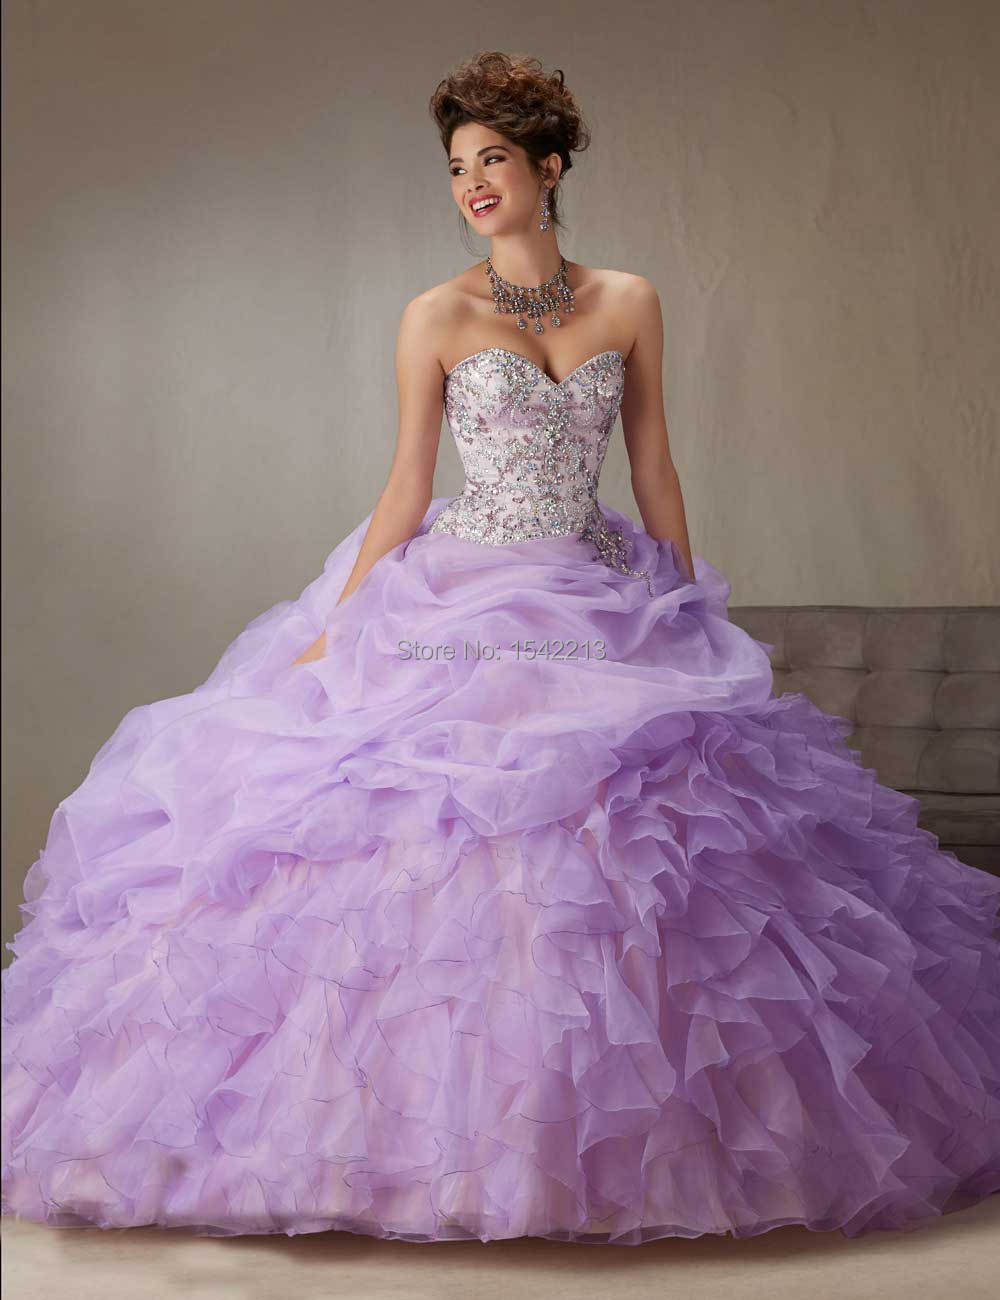 Online Get Cheap Light Purple Quinceanera Dresses -Aliexpress.com ...